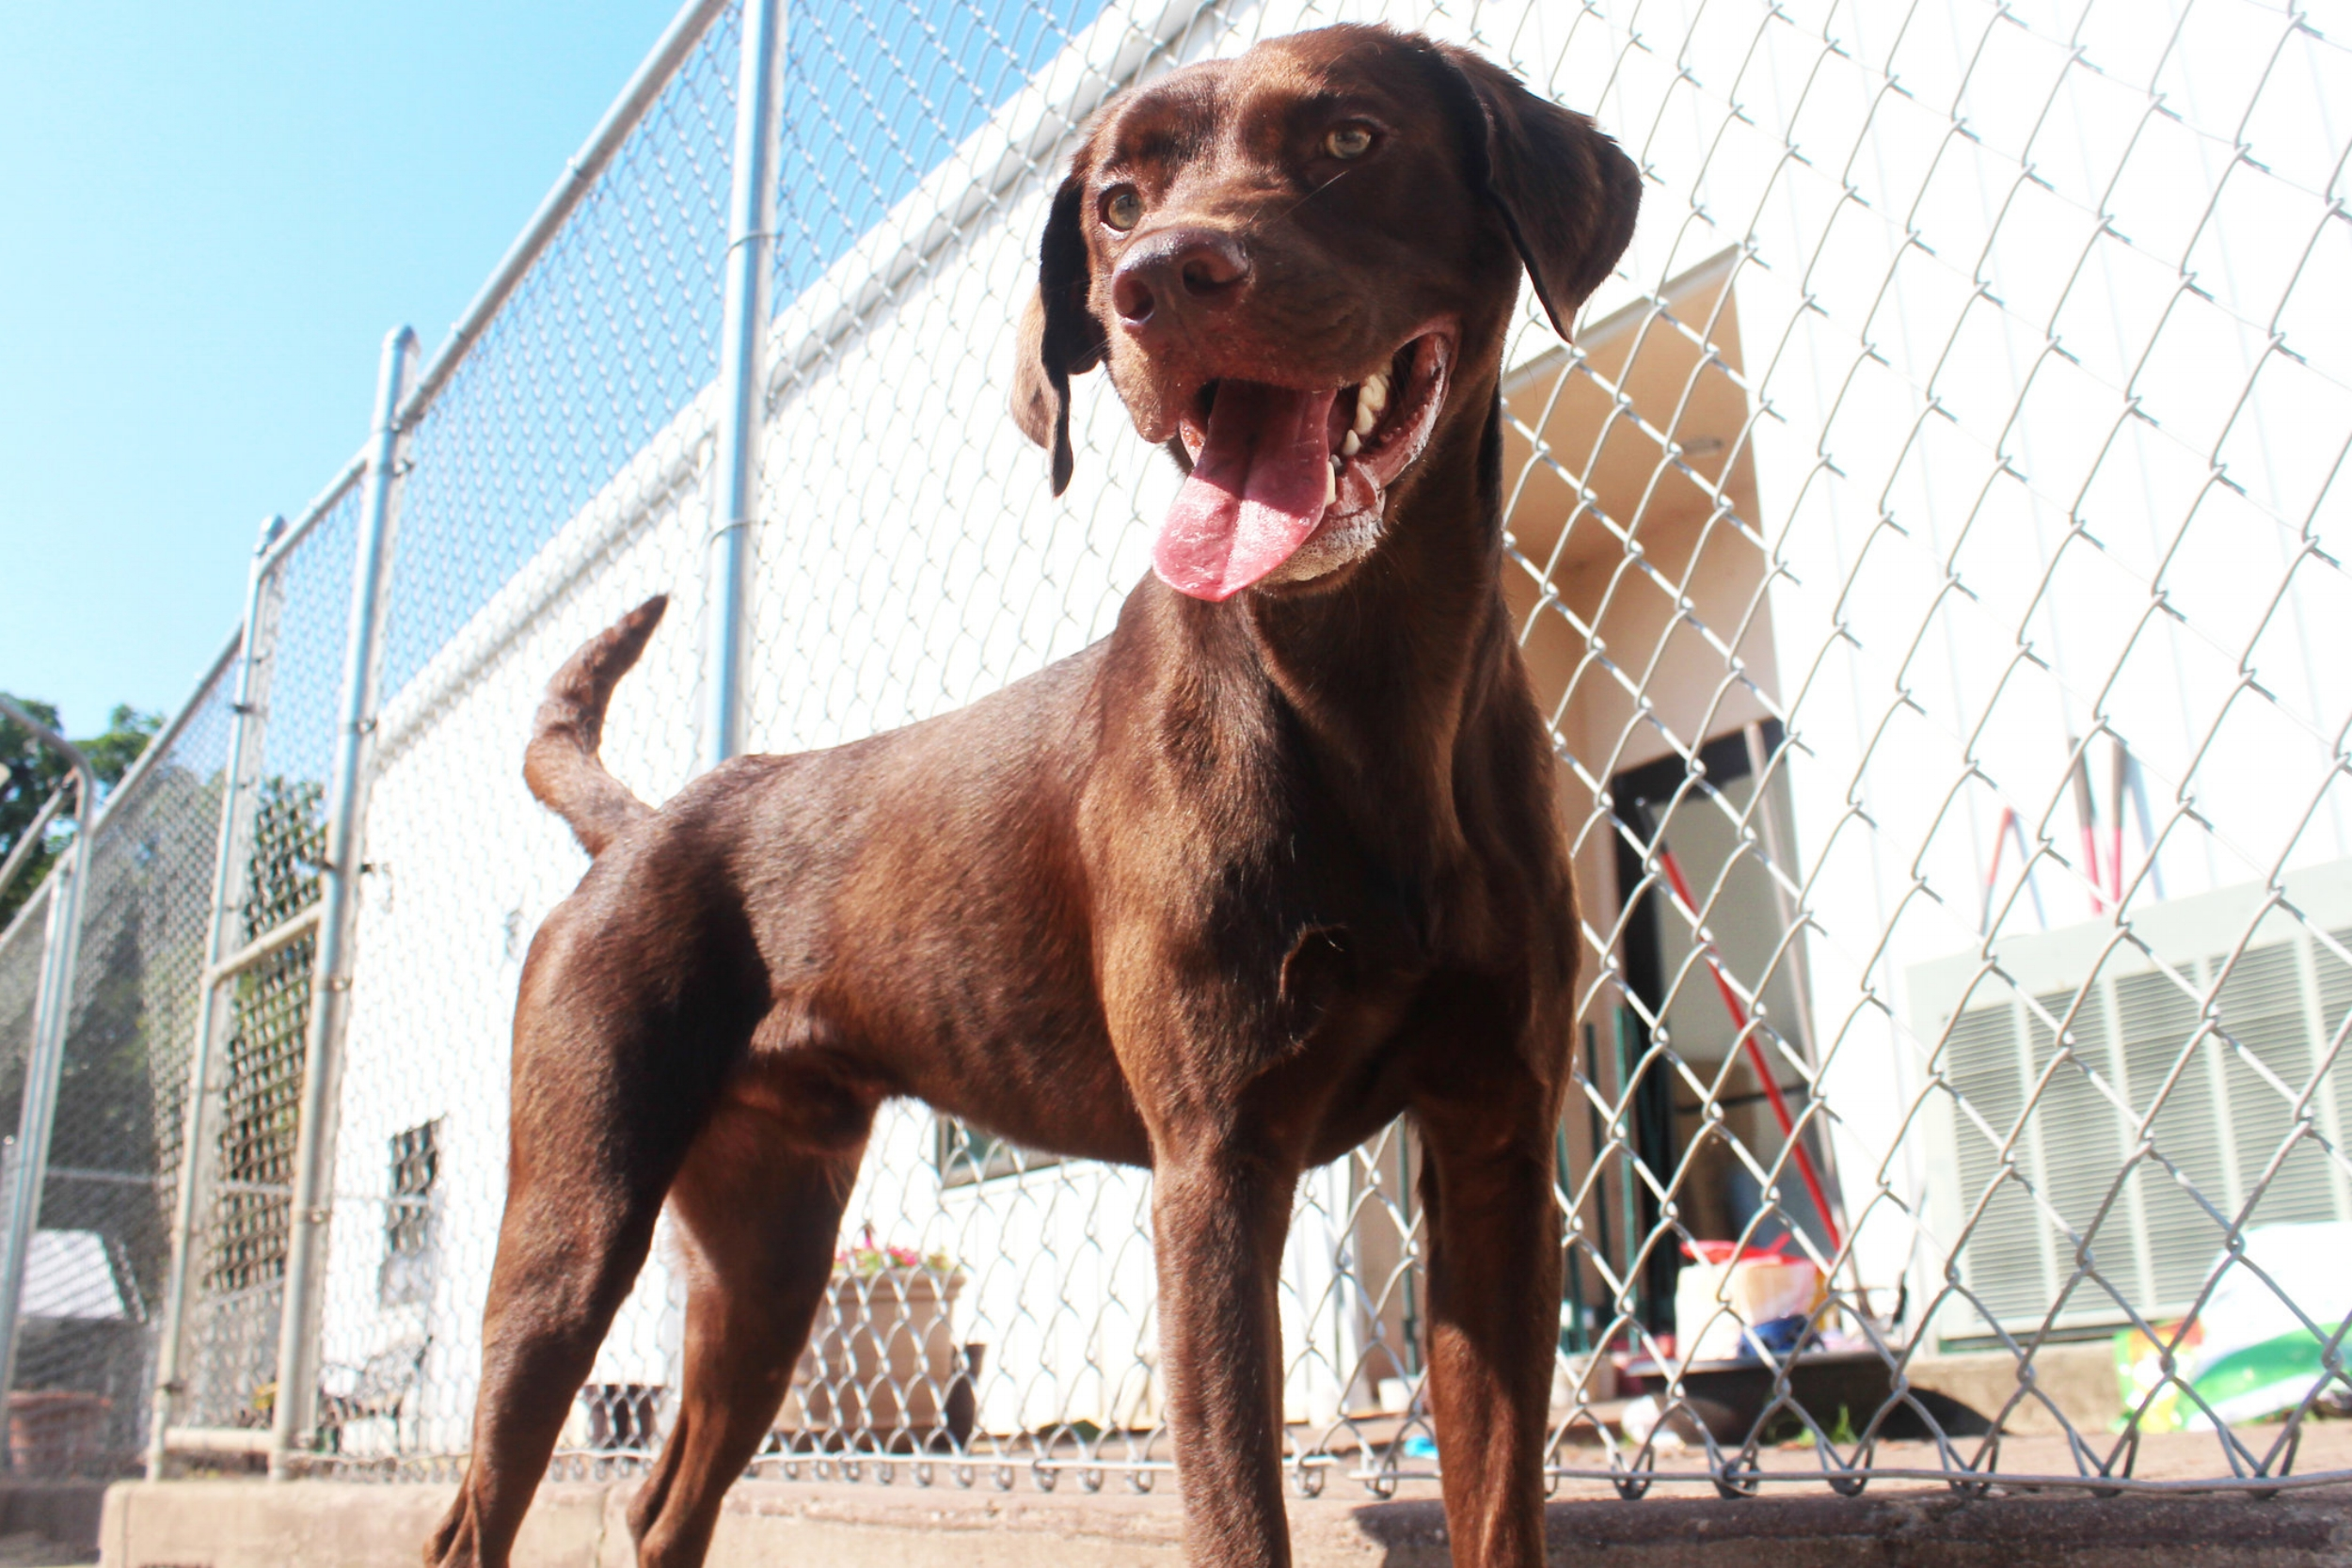 Buck will brighten your day just by looking at you. He's a form of happiness that defies the laws of physics. Buck is a wonderful array of sunlight and energy.